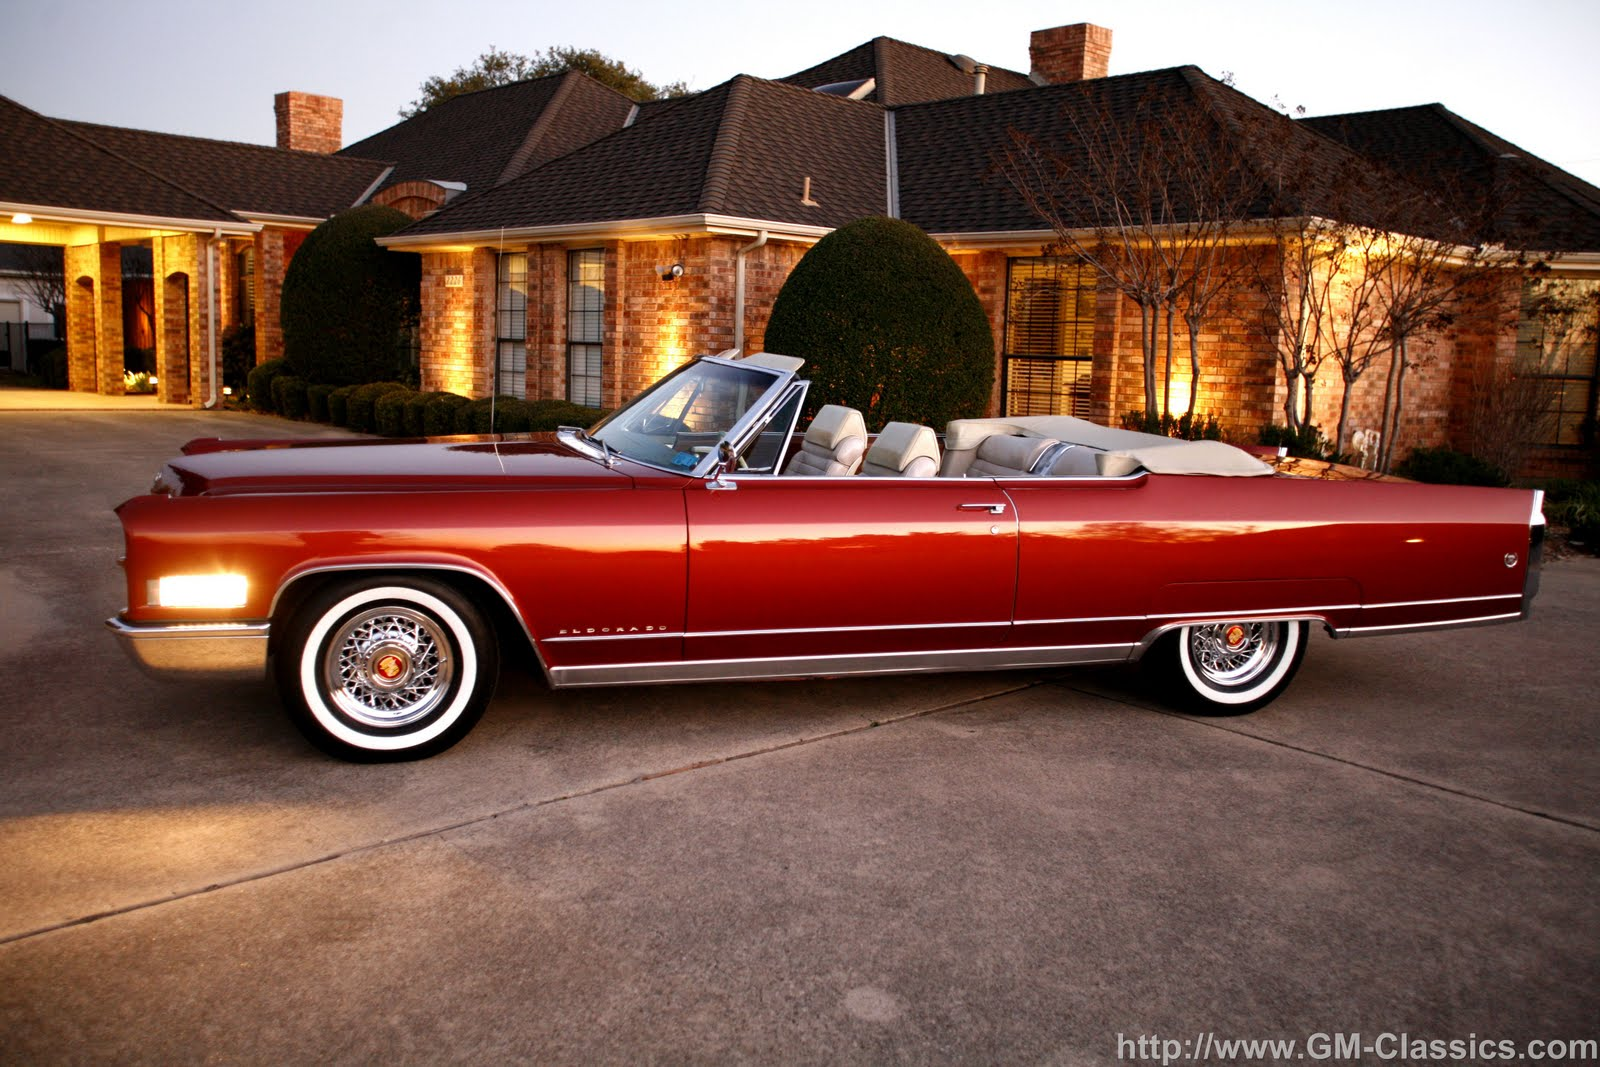 how old is a classic car: The 1966 Cadillac Convertible is \